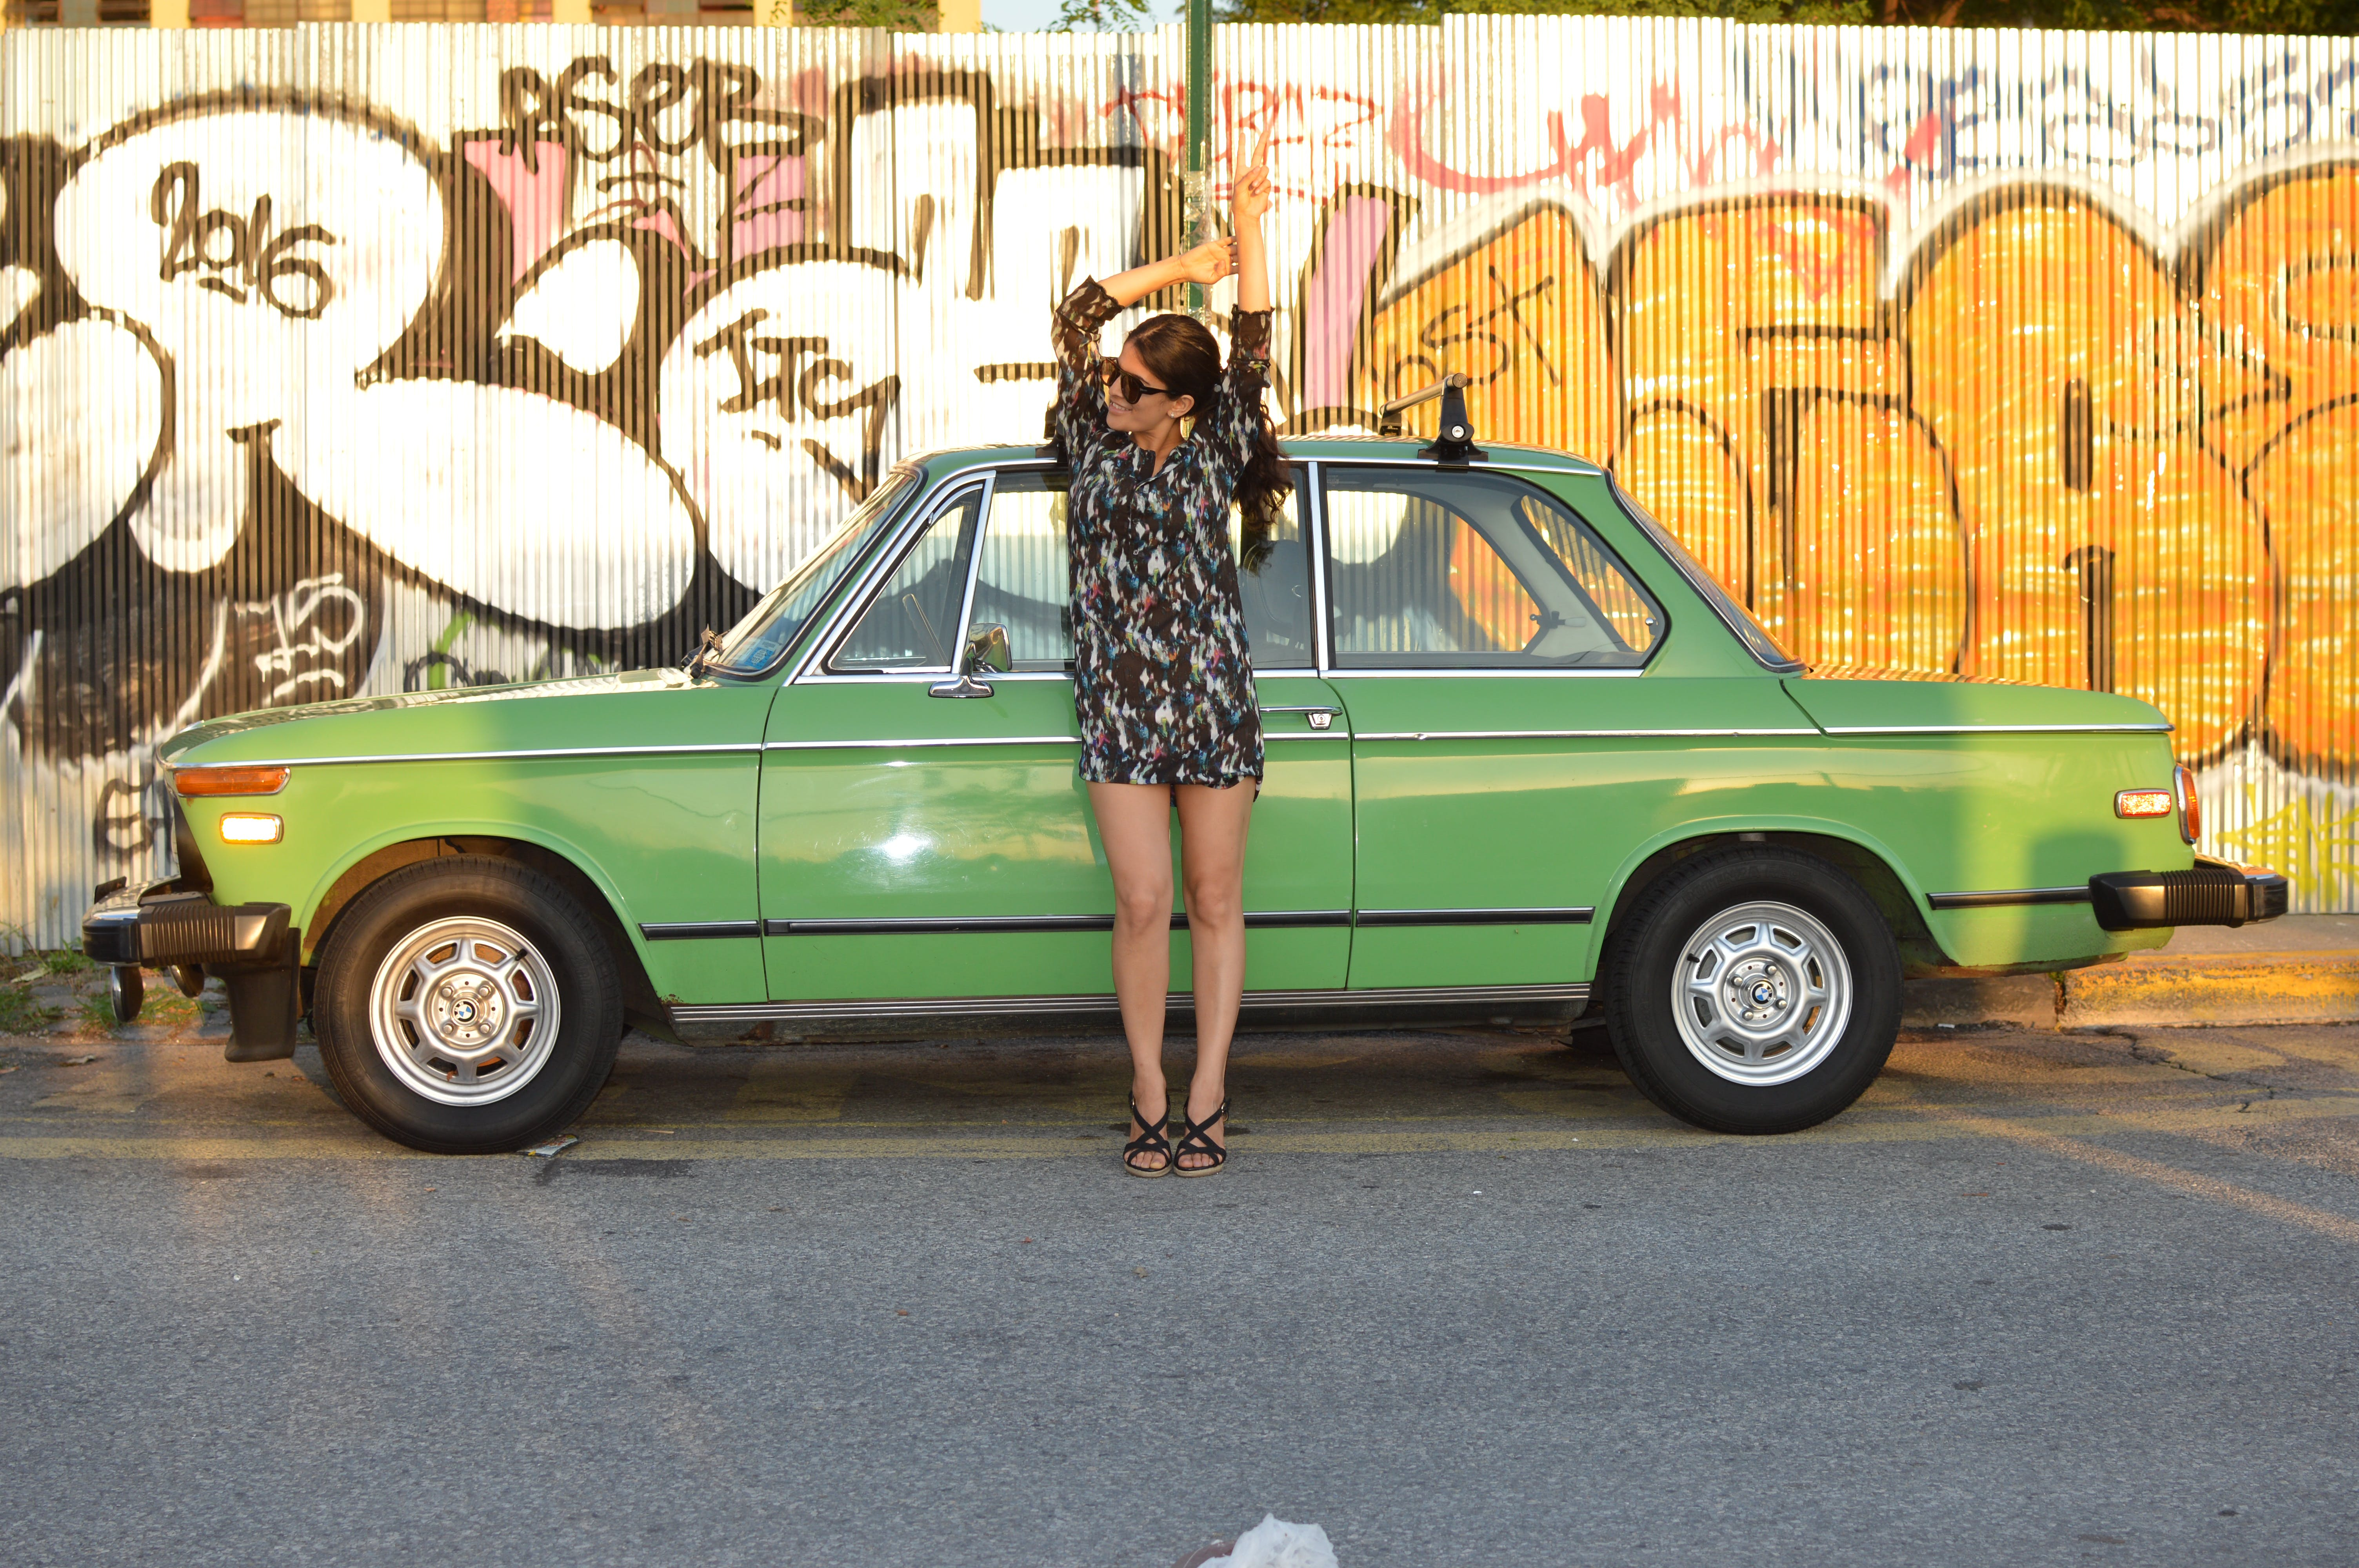 Woman Leaning on Parked Car